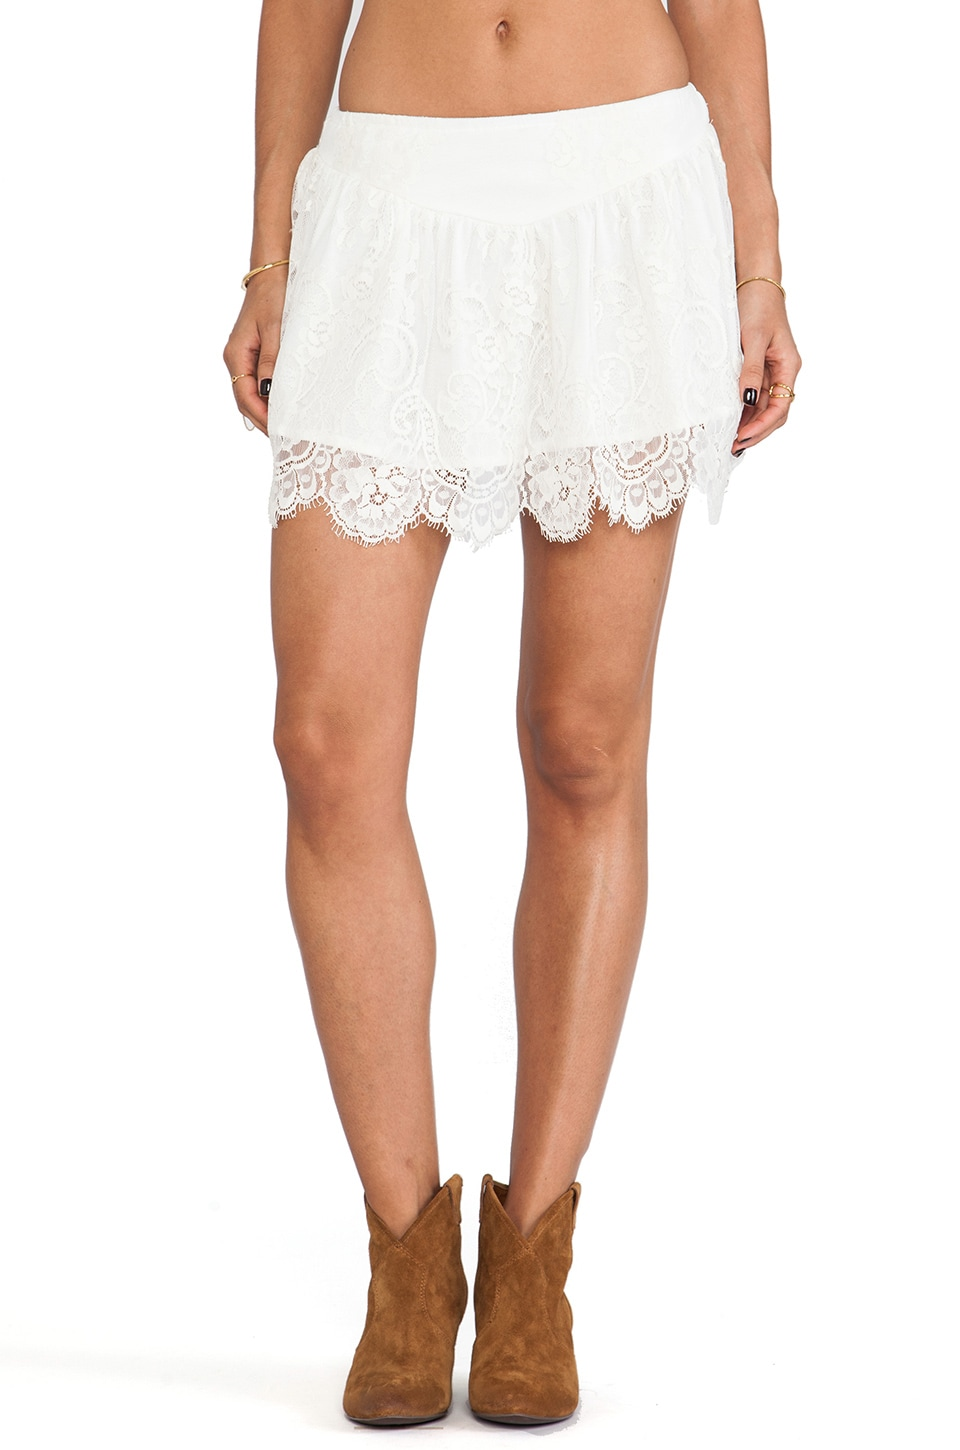 Jen's Pirate Booty Ethereal Moon Dance Mini Skirt in White Sand